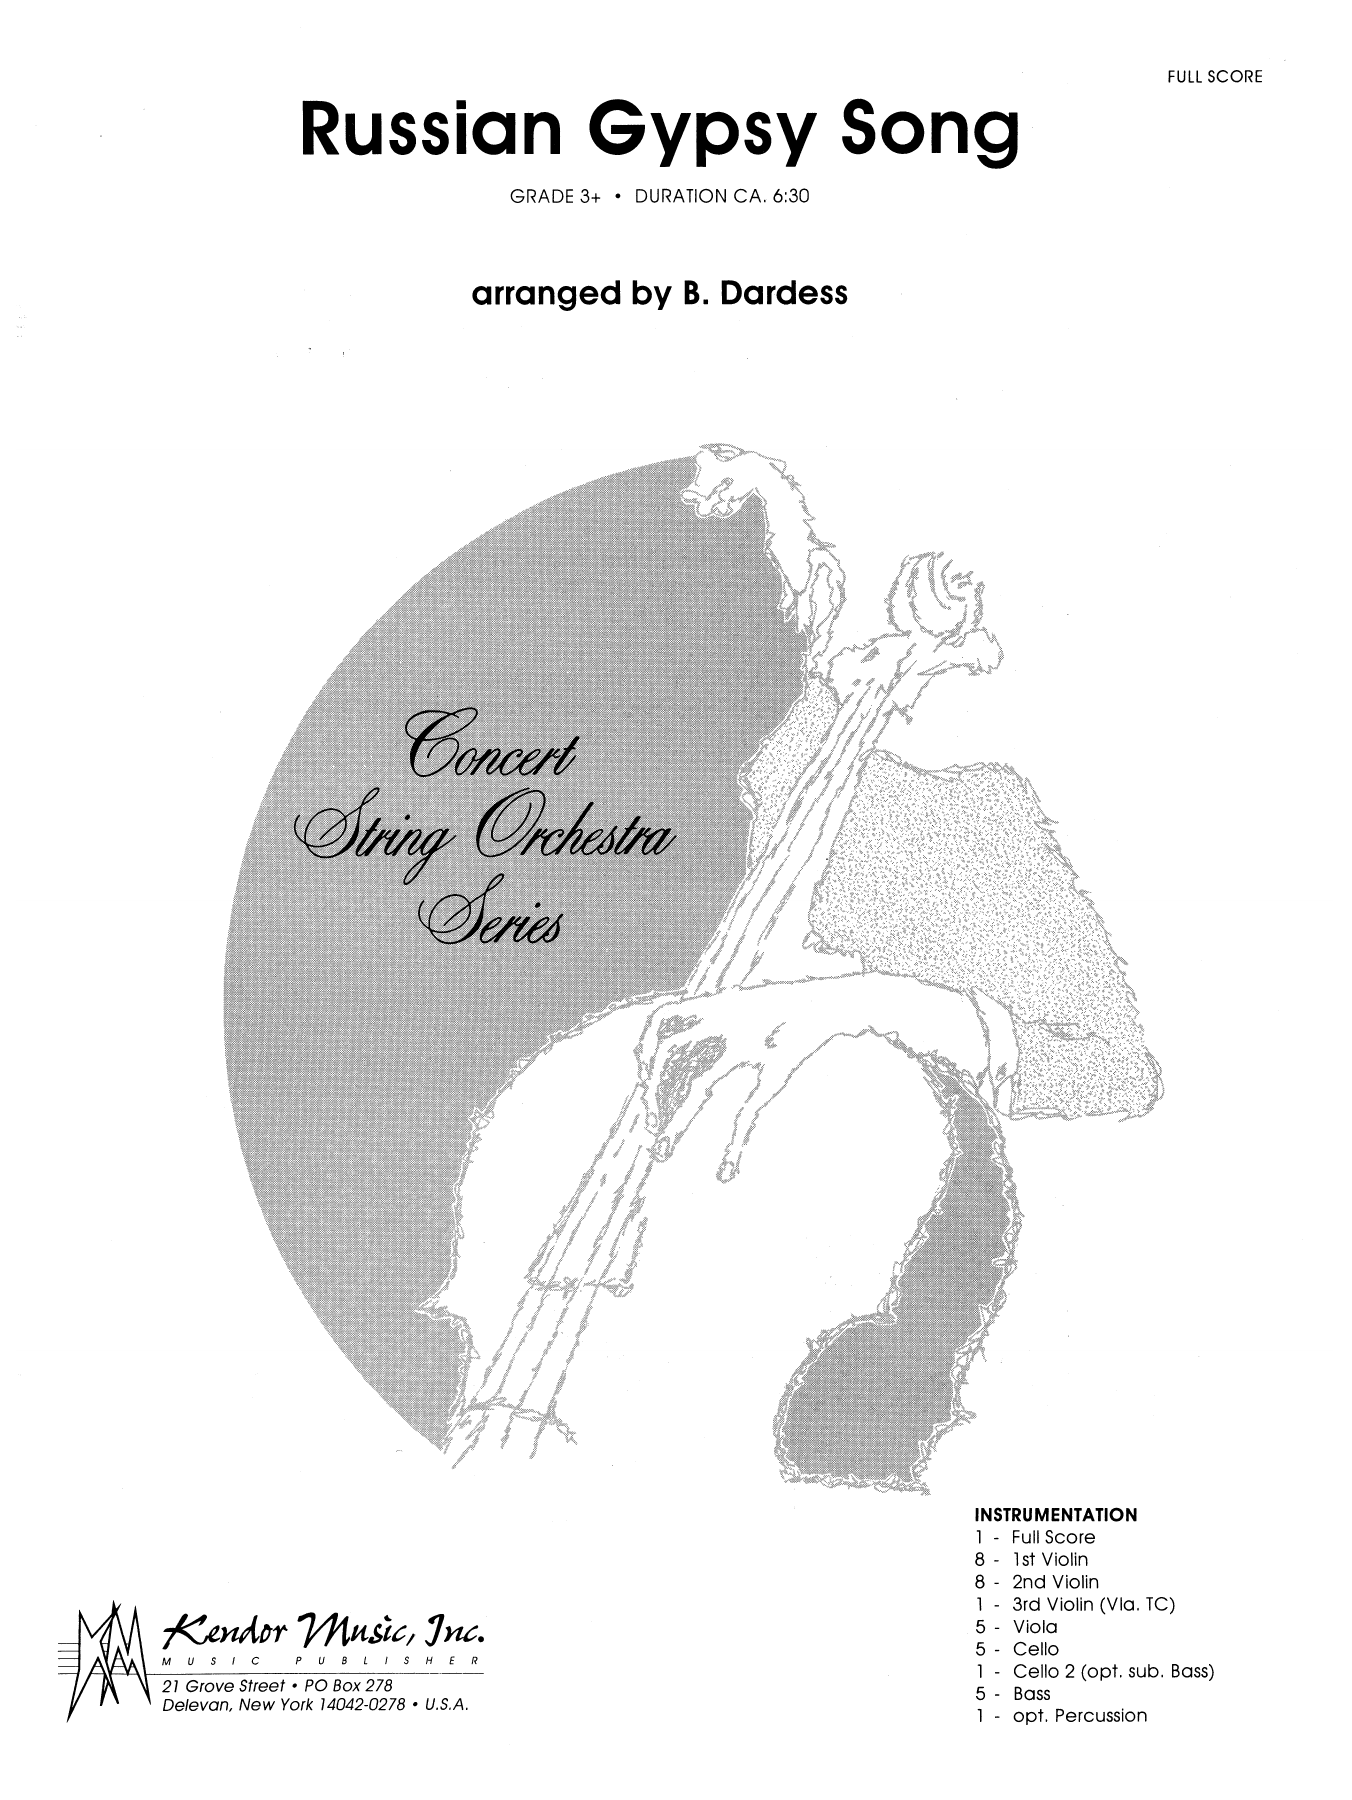 Russian Gypsy Song (COMPLETE) sheet music for orchestra by Betty Dardess